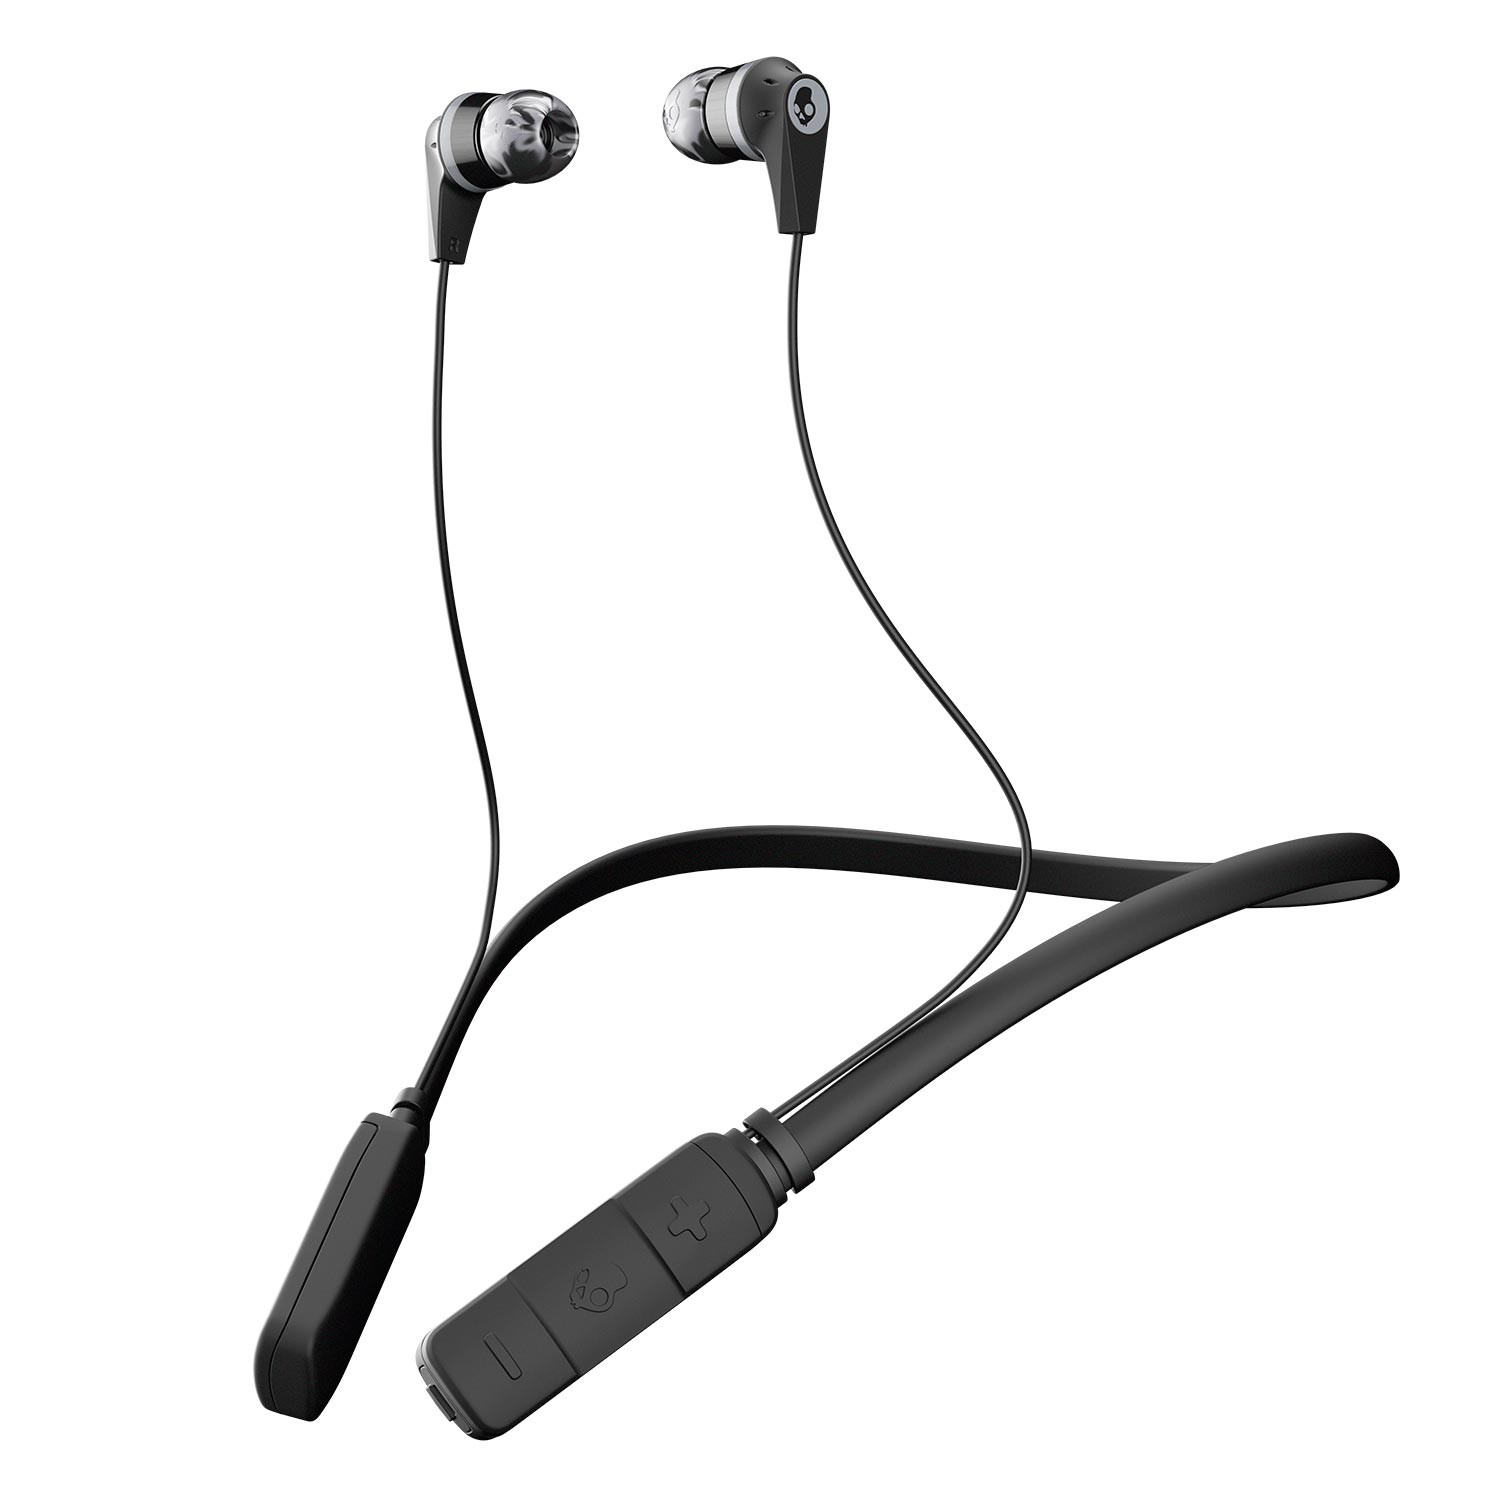 Sluchátka Skullcandy Ink'd Wireless black/grey